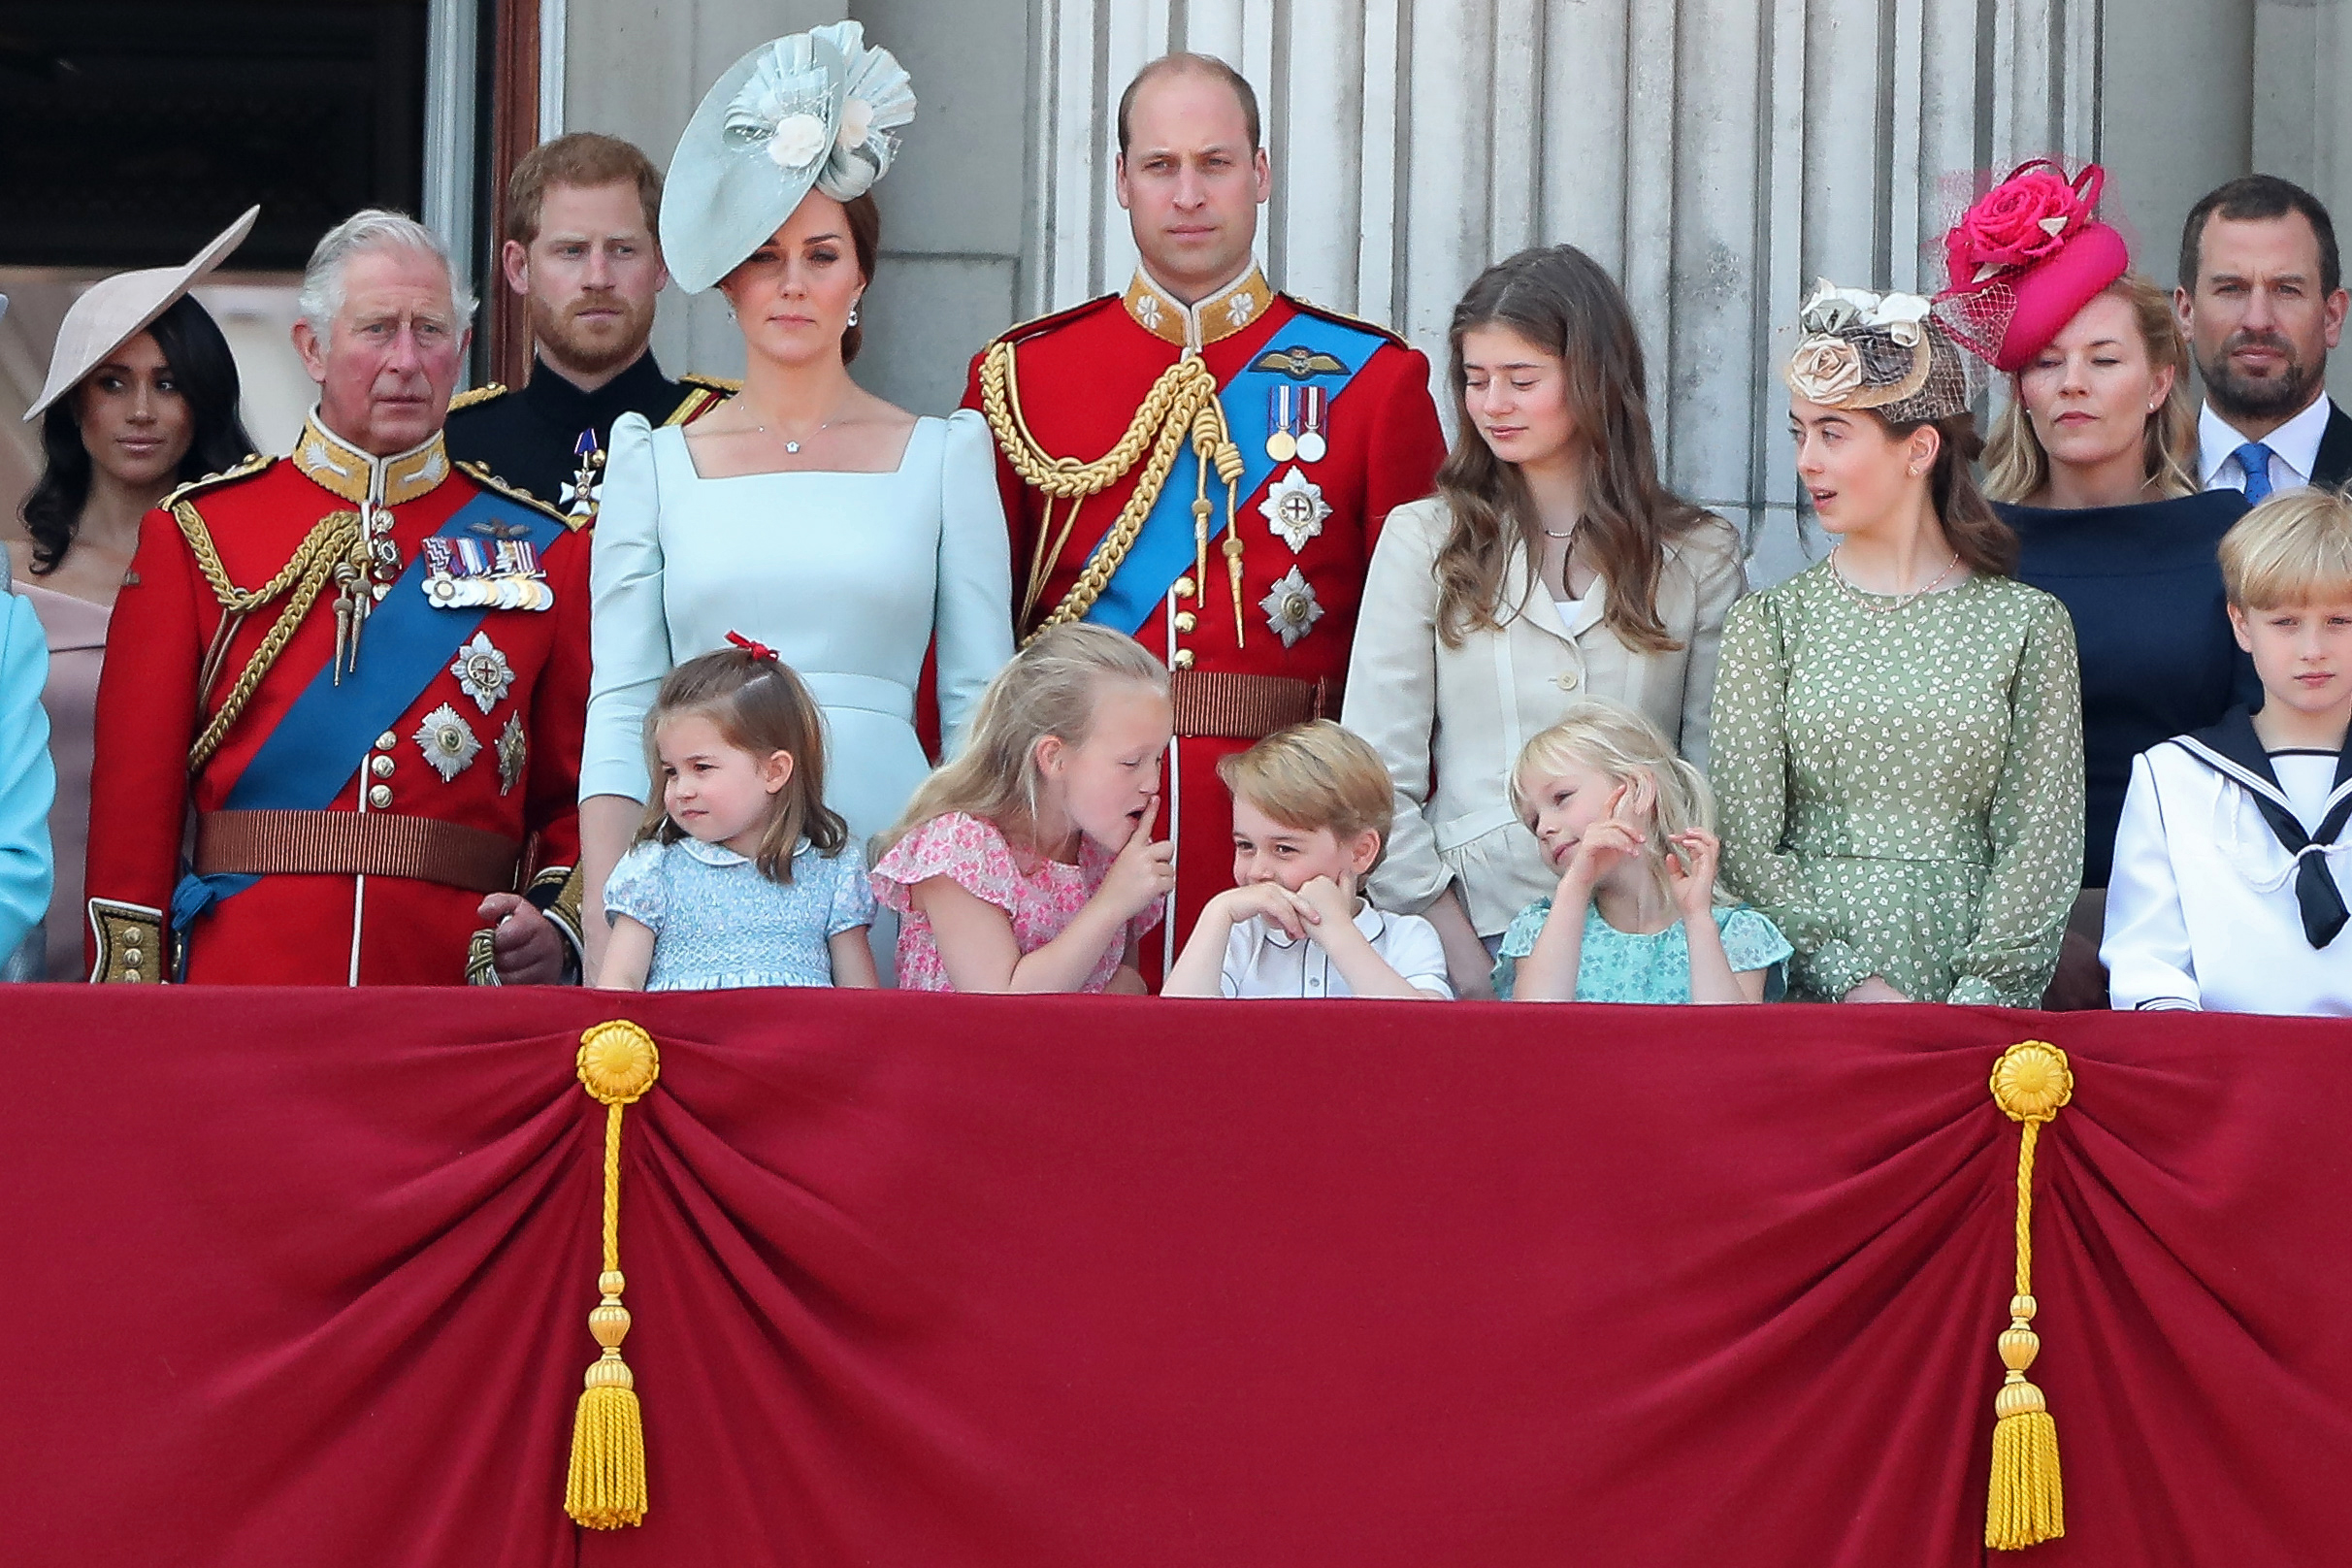 In the front row (L-R), children, Princess Charlotte of Cambridge, Savannah Phillips, Prince George of Cambridge and Isla Phillips chat on the balcony of Buckingham Palace as members of the Royal Family gather to watch a fly-past of aircraft by the Royal Air Force, in London on June 9, 2018.